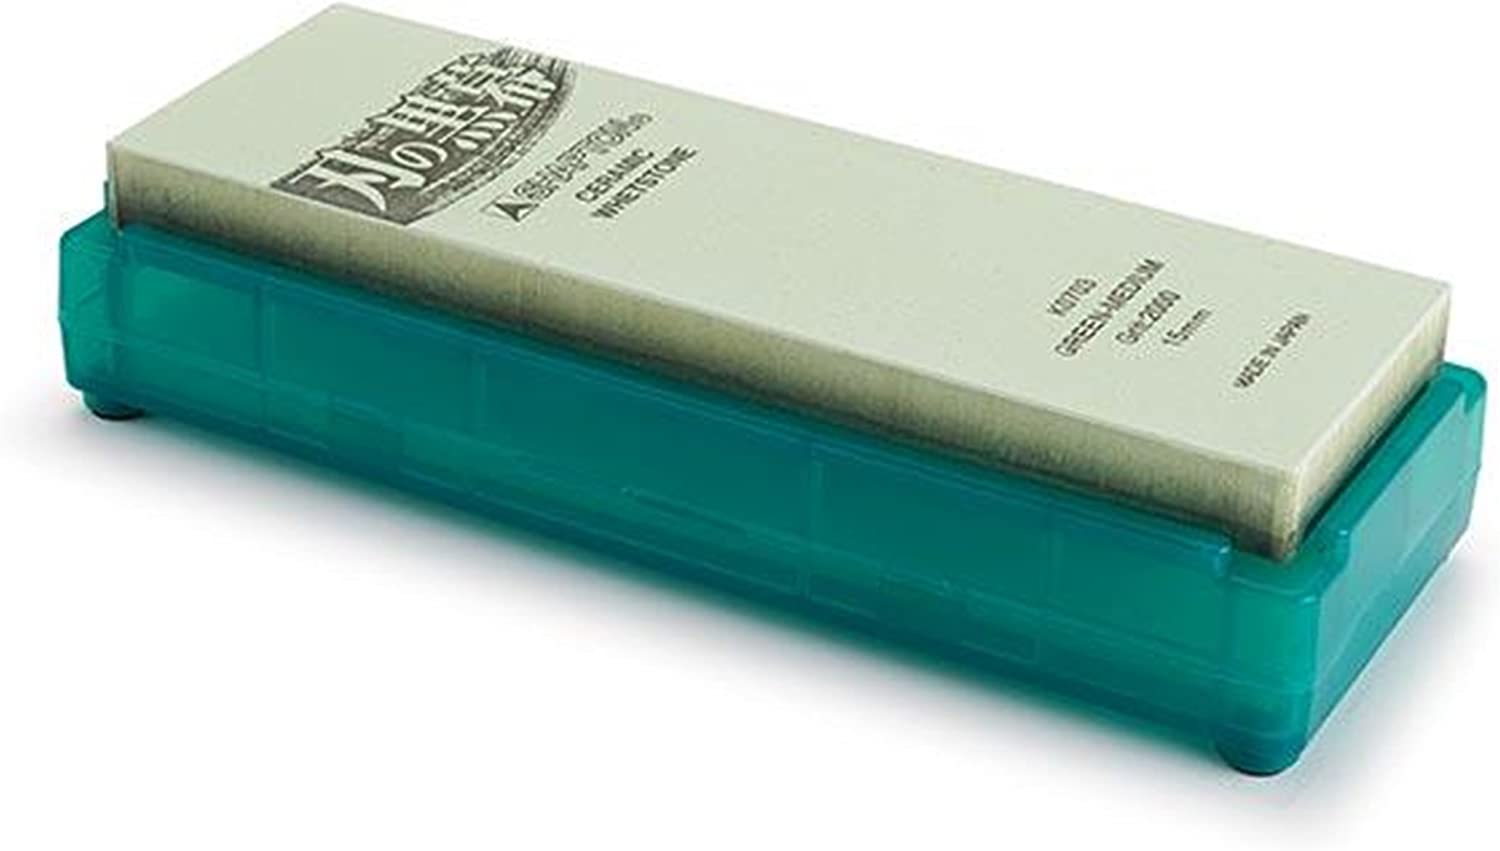 #2000 Grit Ceramic (Green) Professional Series Water Stone - Shapton